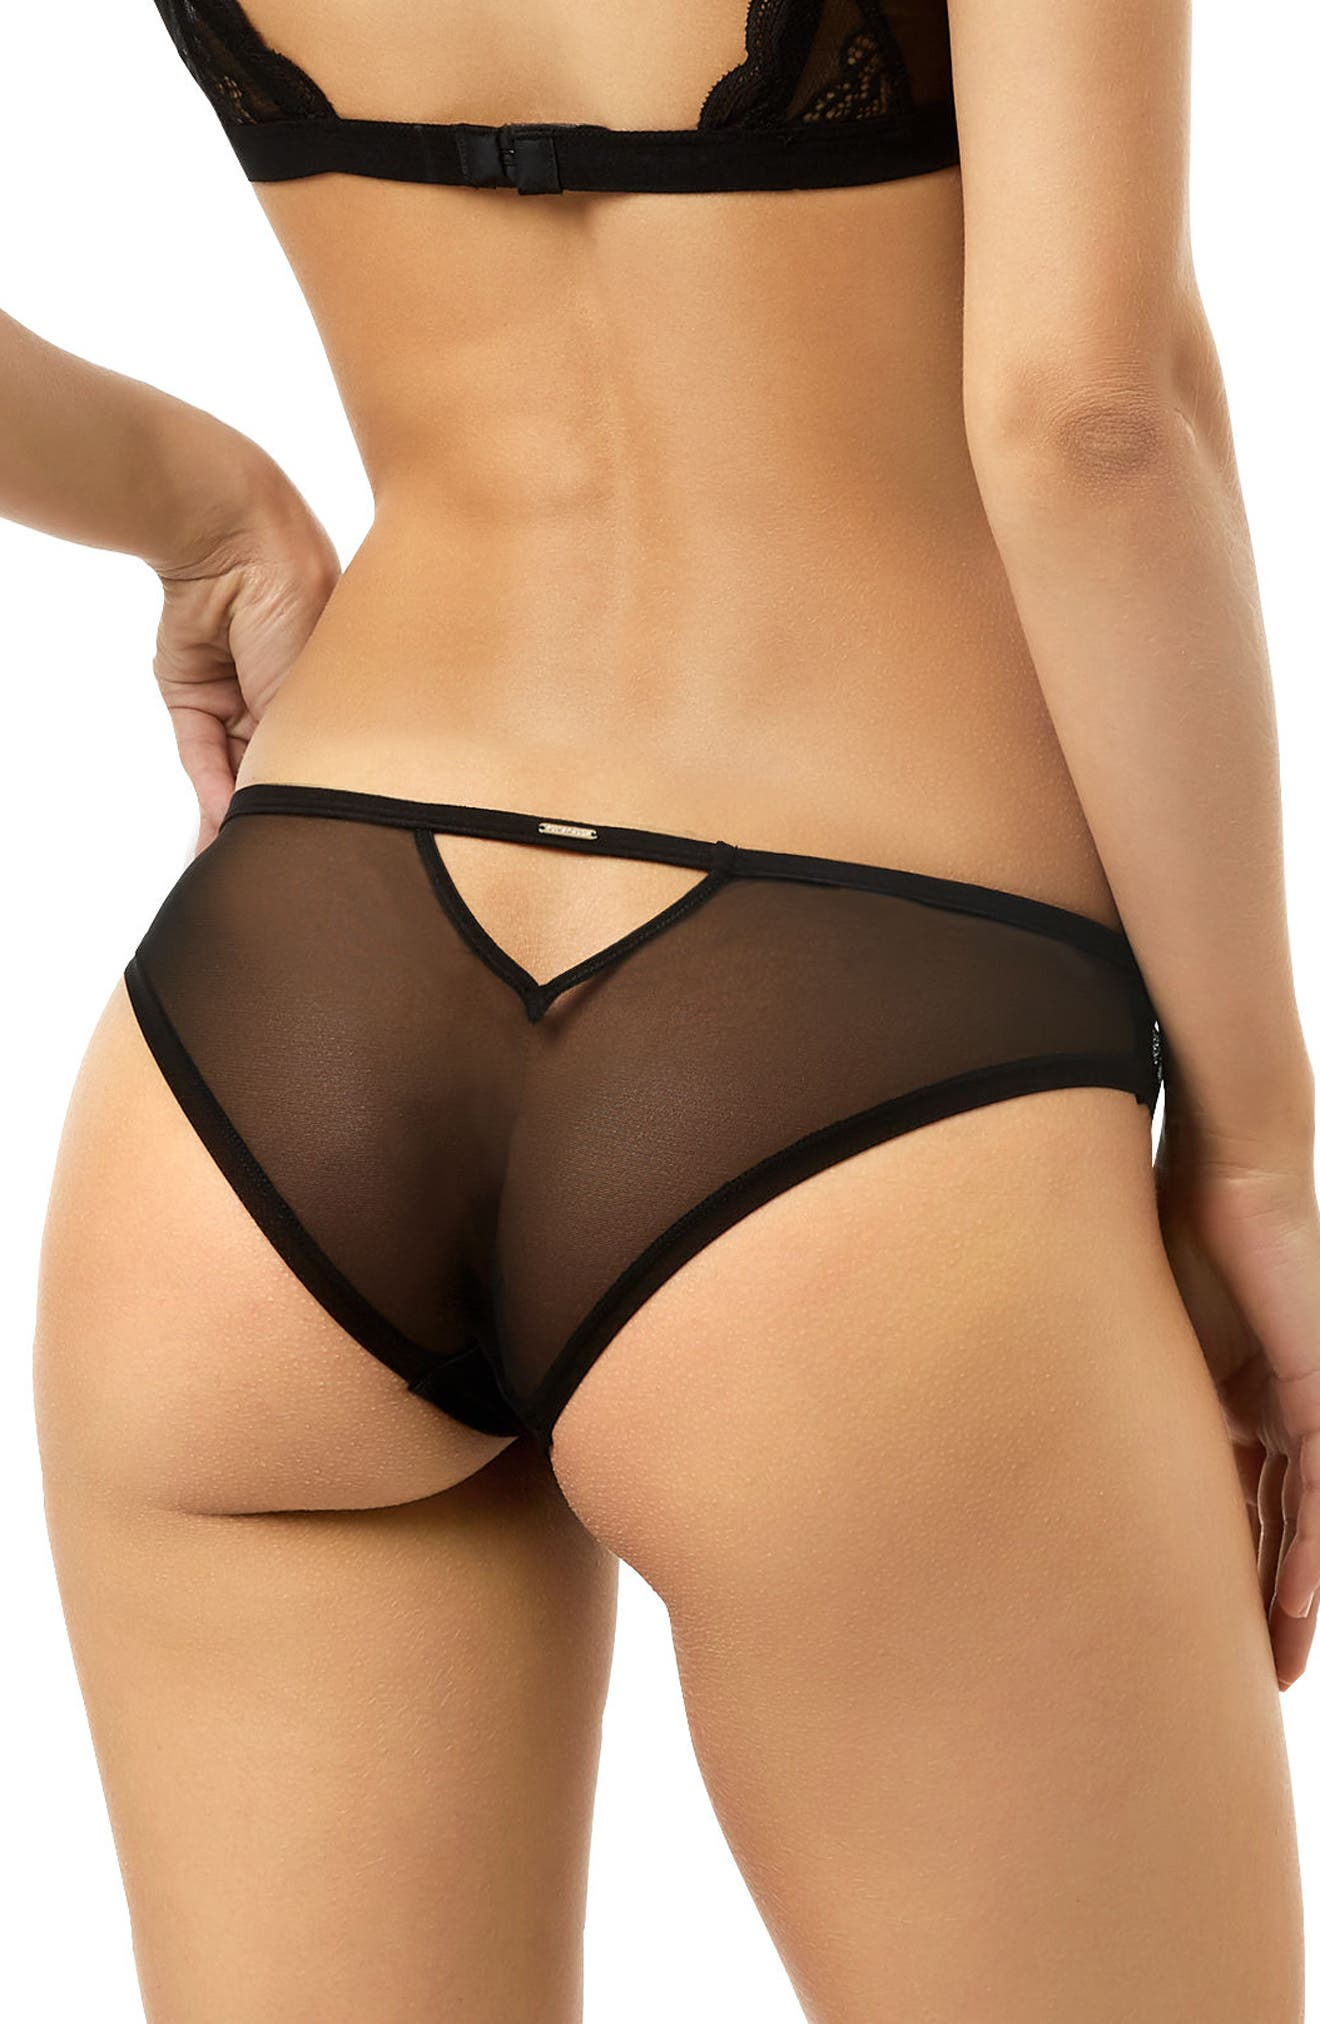 Astrid Cutout Panties,                             Alternate thumbnail 2, color,                             Black